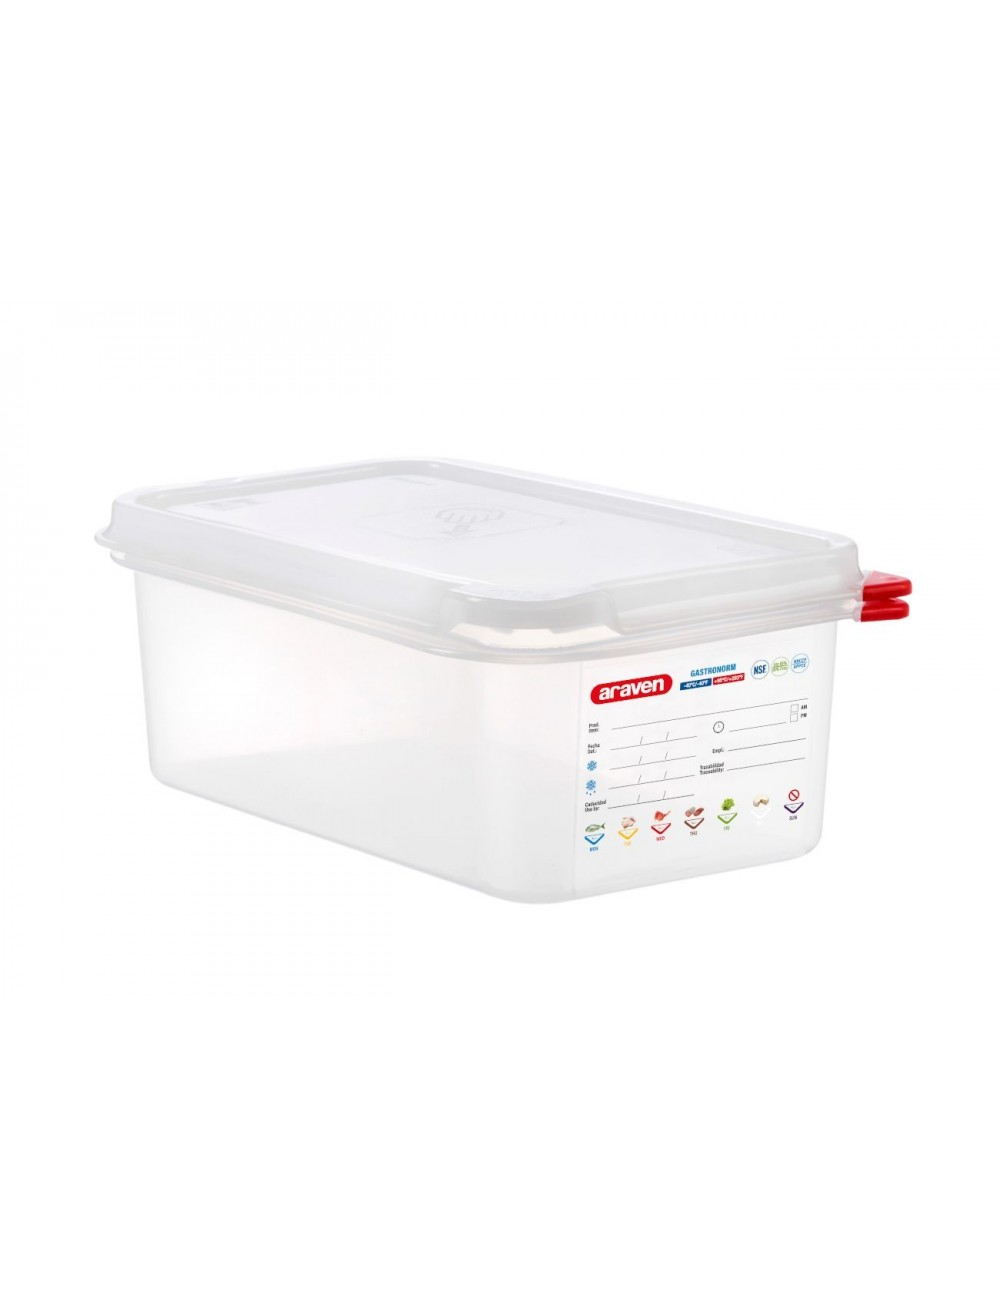 AIRTIGHT CONTAINER - GN 1/4 - Height 100 mm